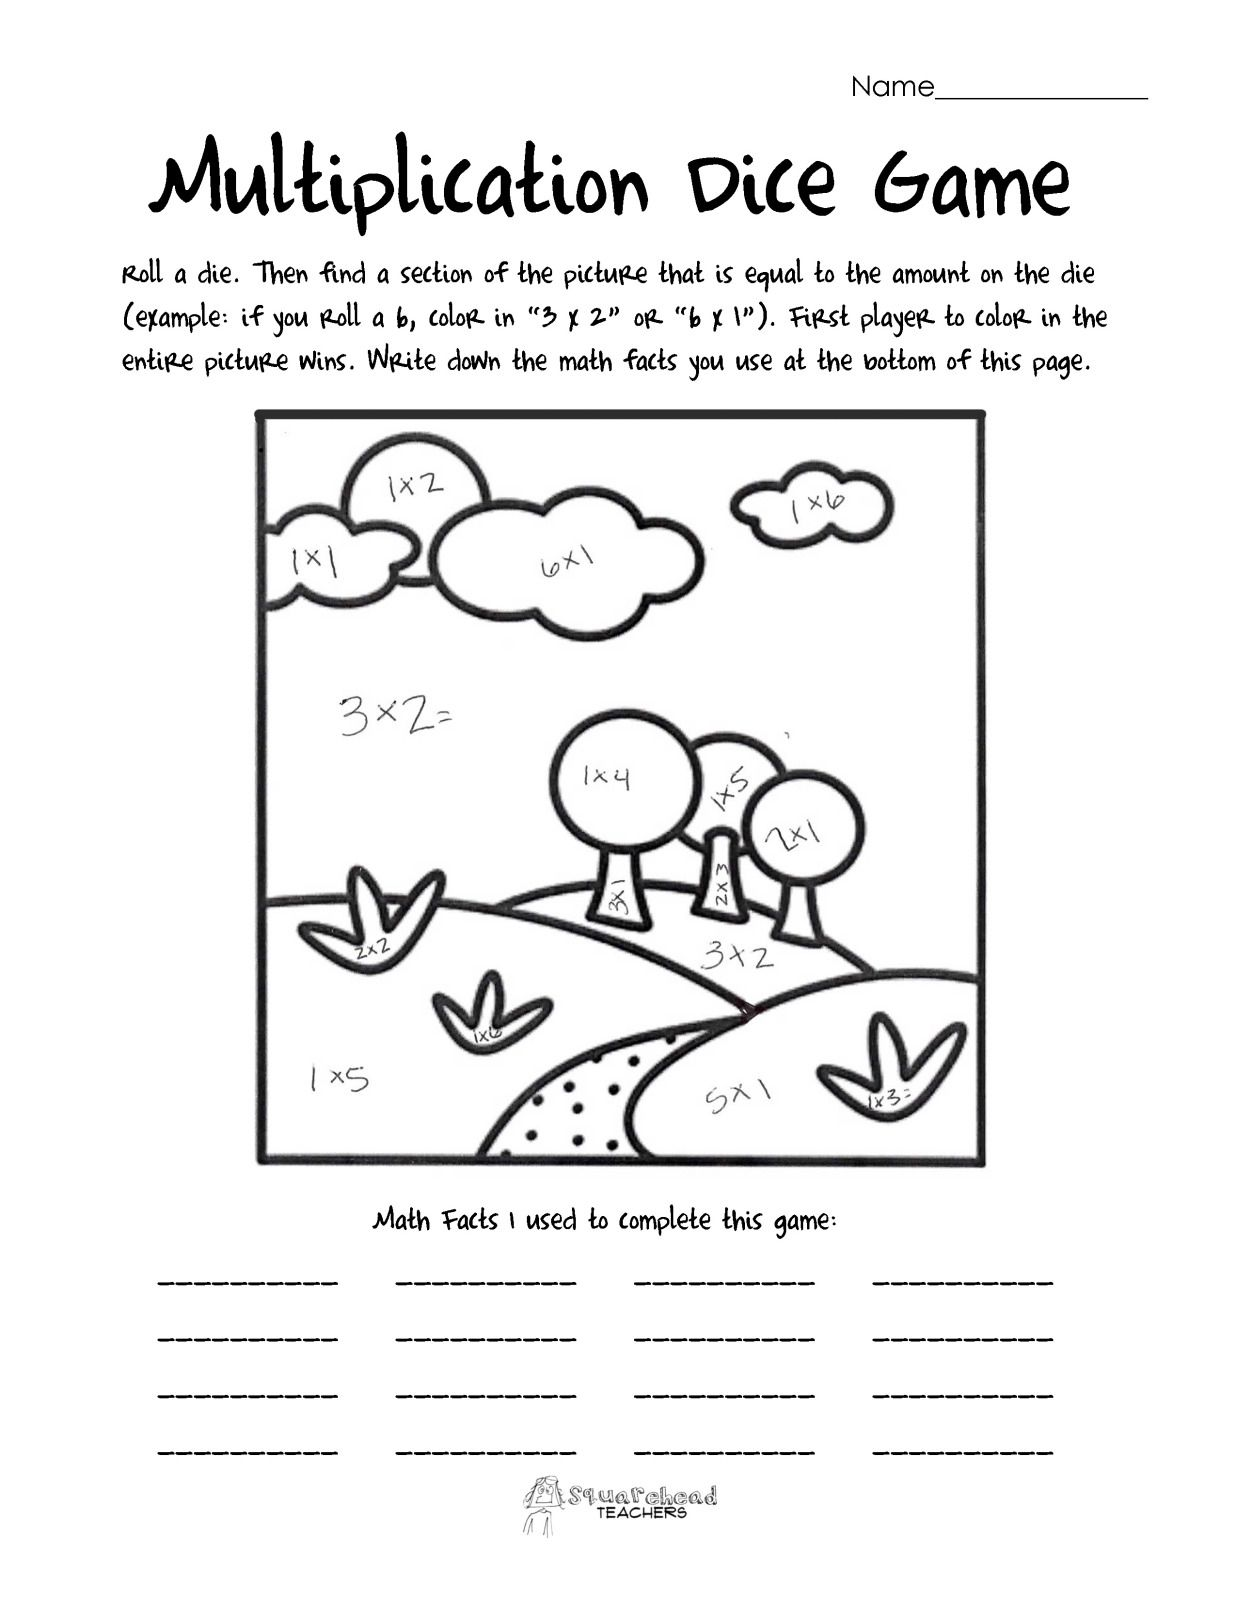 Multiplication Dice Game Landscape With Images